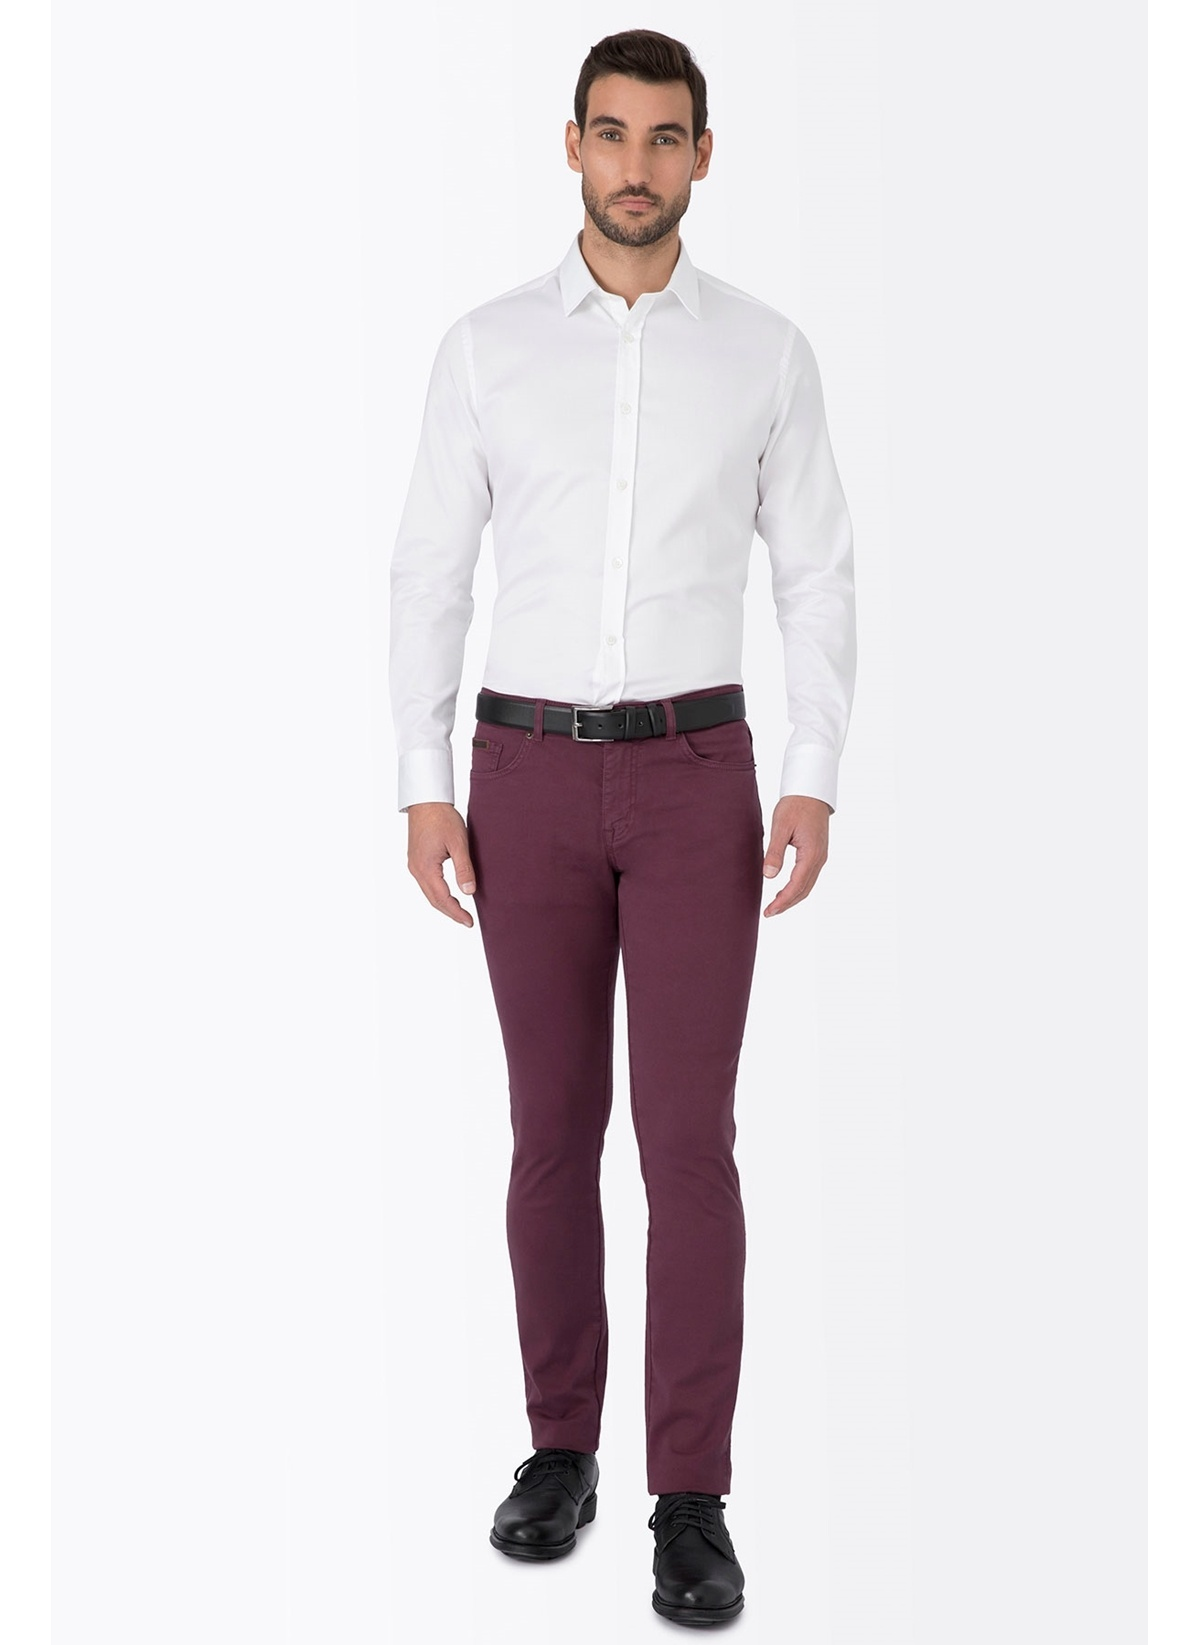 Hemington Slim Fit Kanvas Spor Pantolon 174429047 Pantolon – 149.5 TL